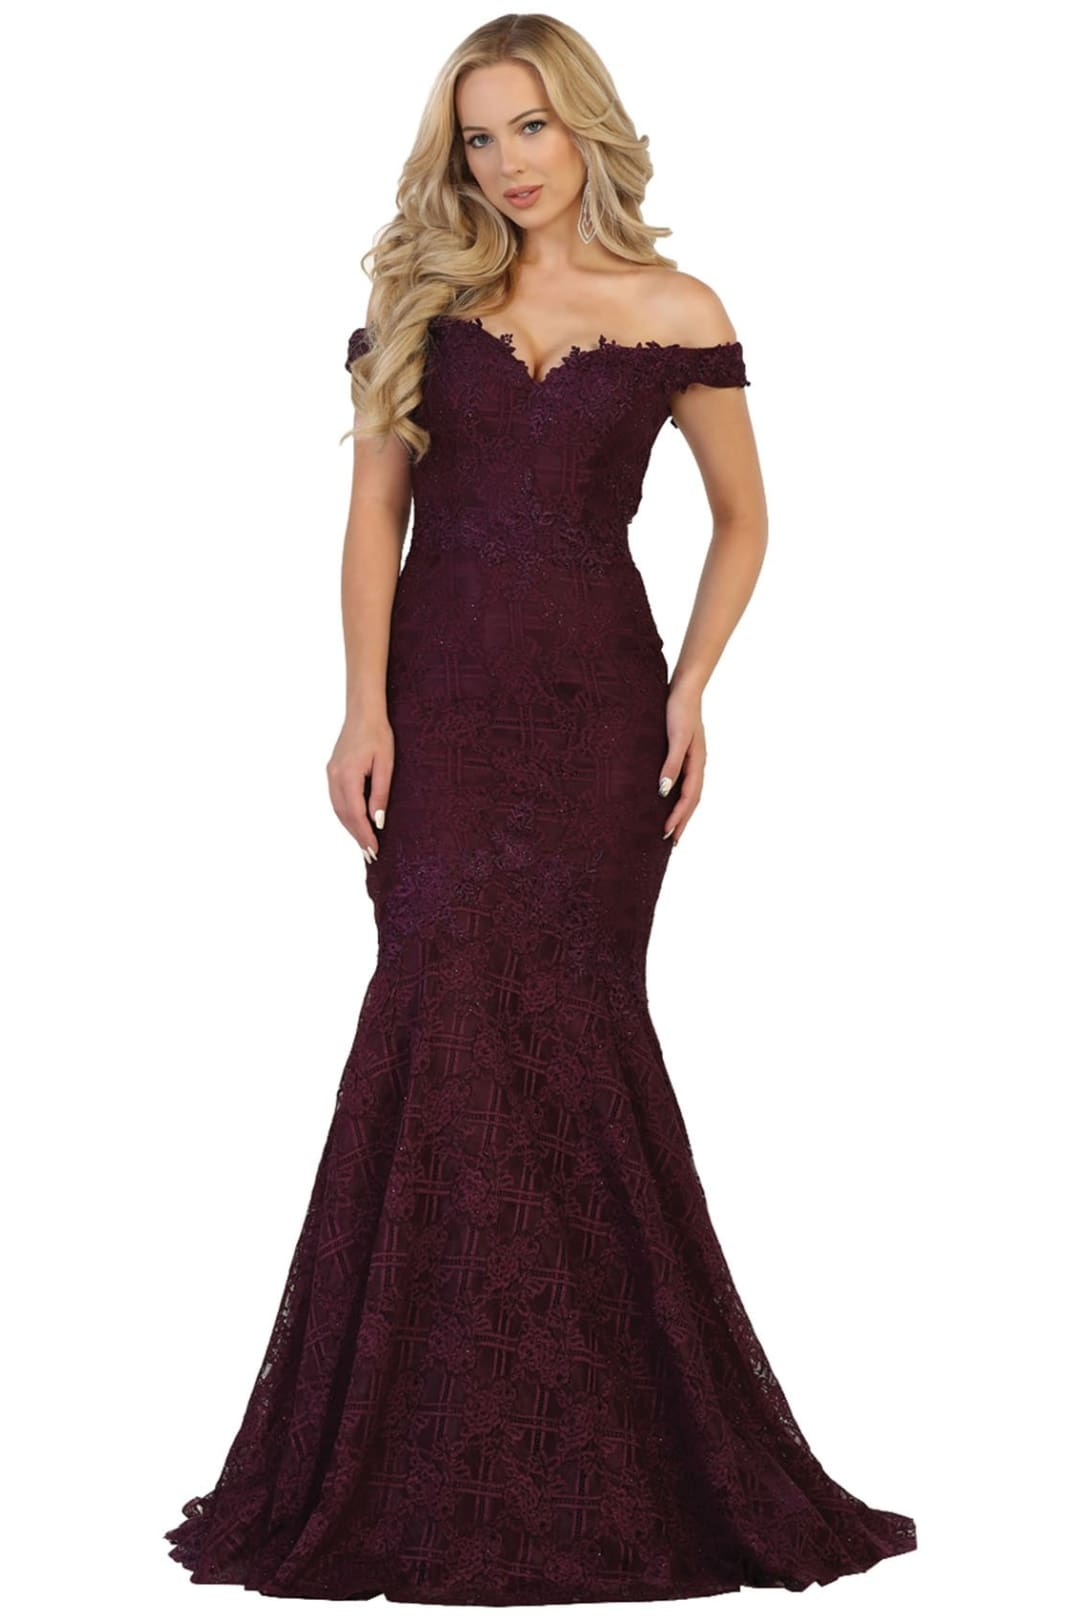 Off-Shoulder Formal Gown - Eggplant / 12